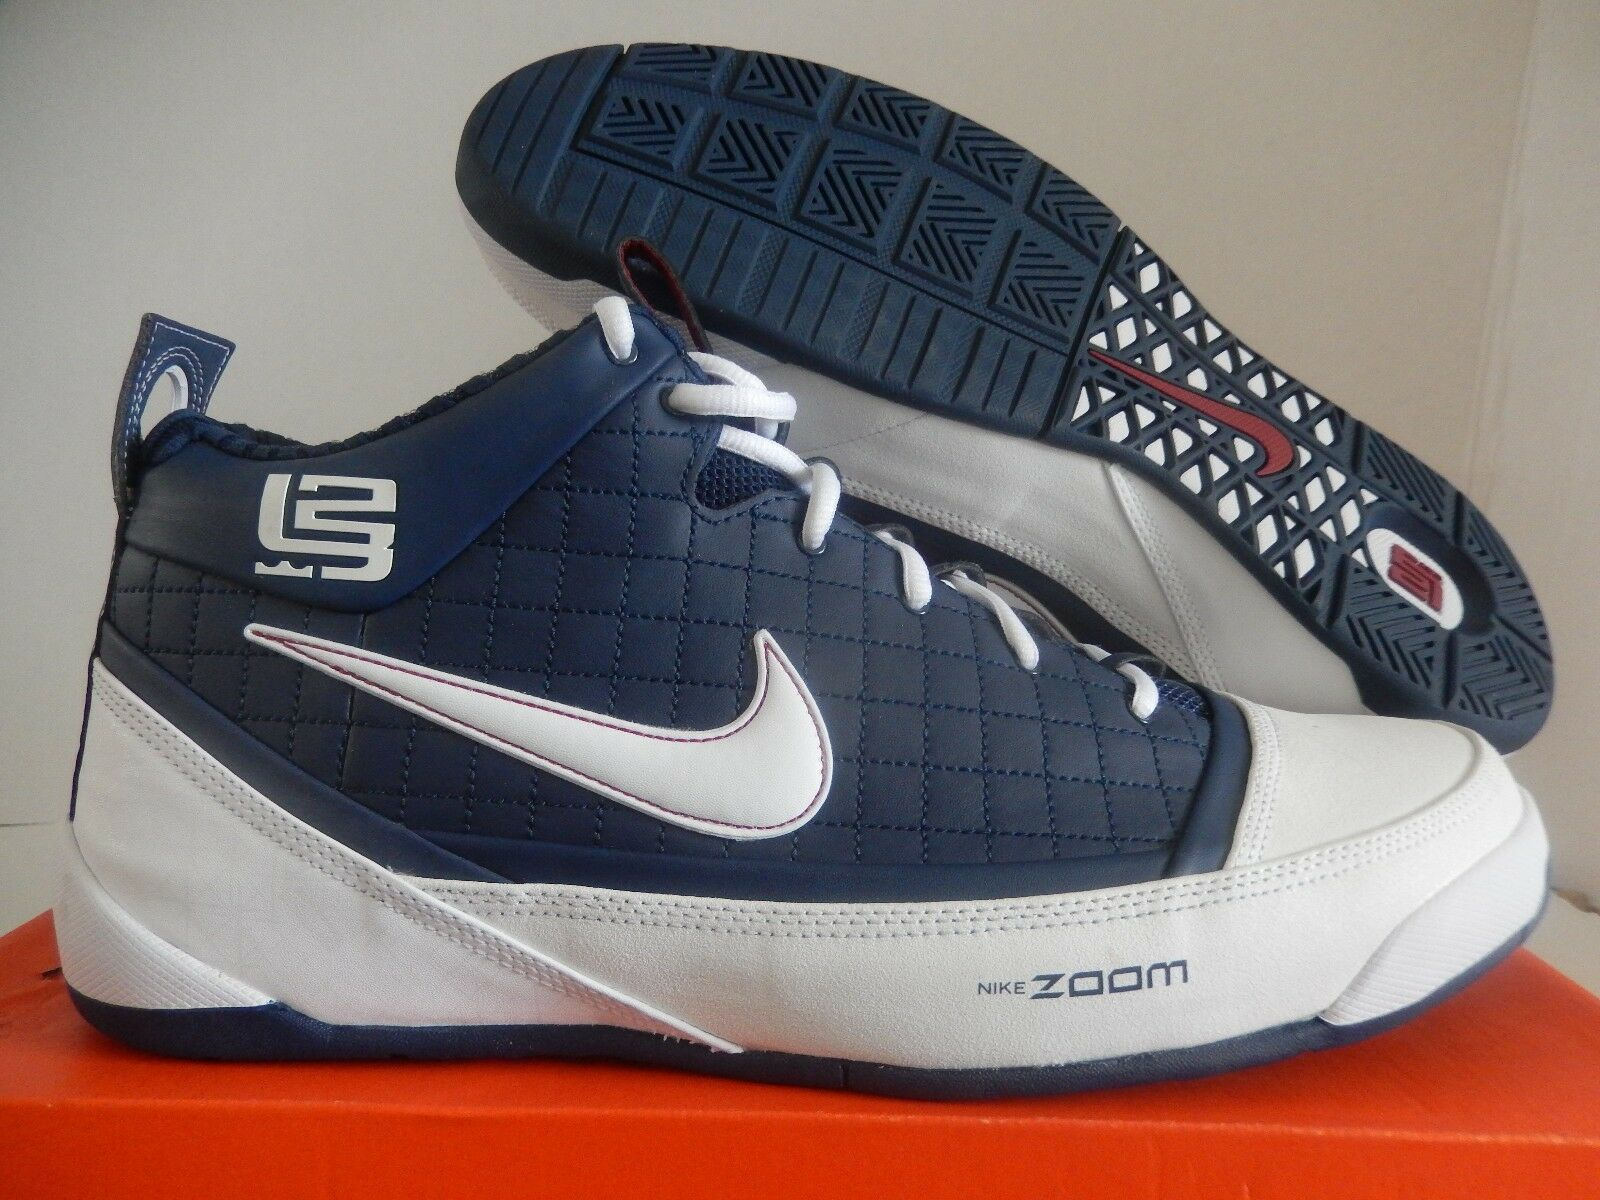 NIKE ZOOM LBJ AMBASSADOR  LEBRON JAMES  NAVY blueE SZ 16 SUPER RARE  [333492-411]